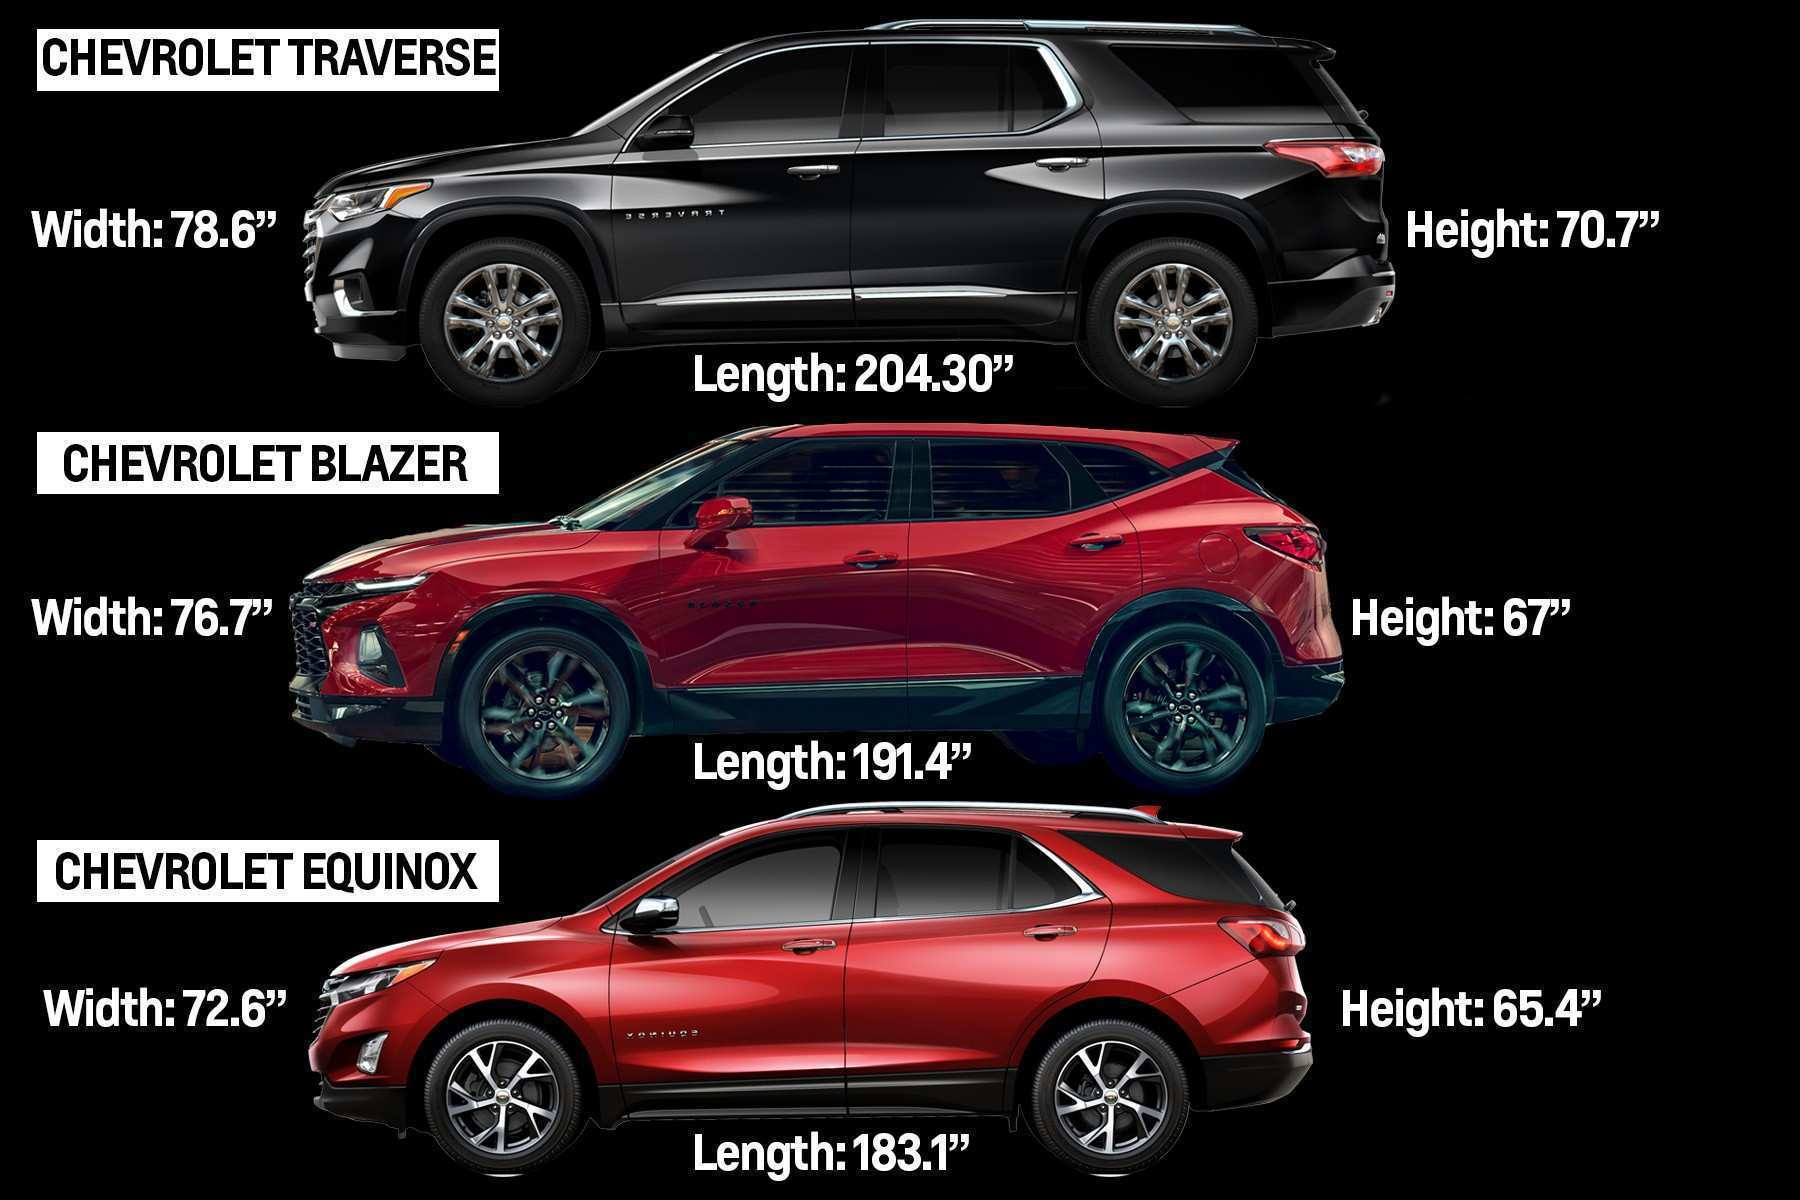 75 All New 2019 Chevy Blazer Price And Release Date